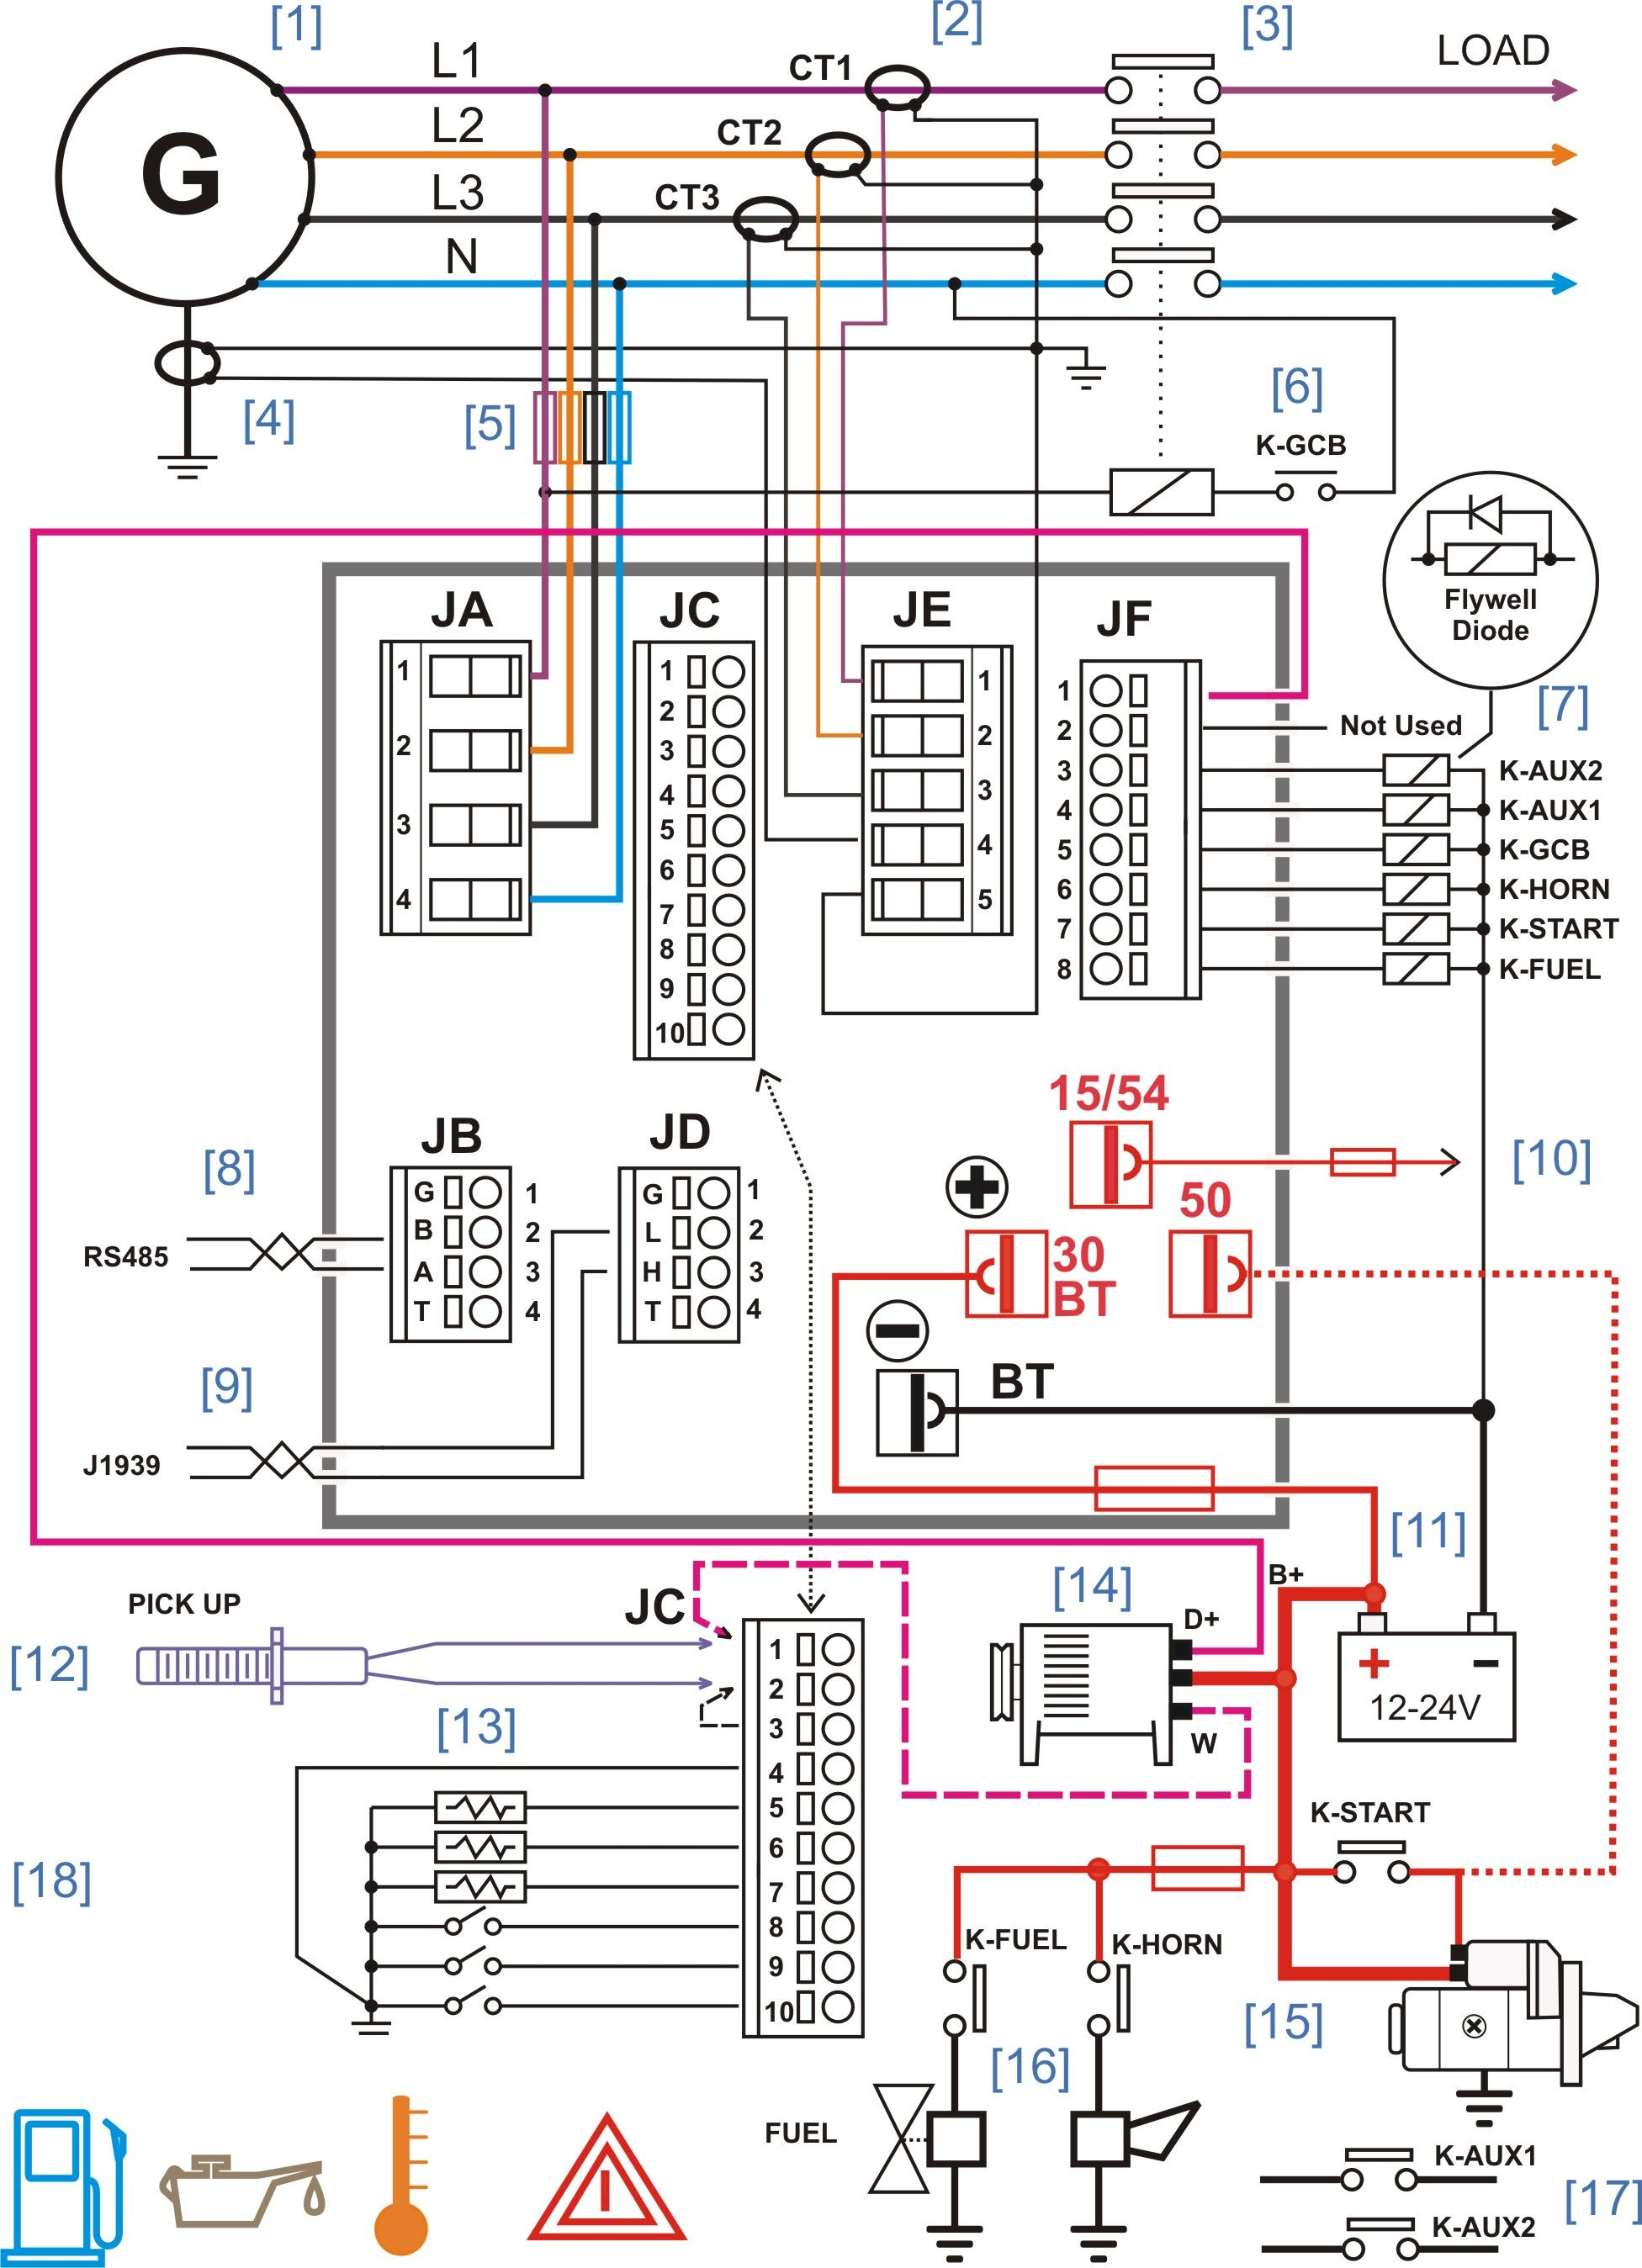 diesel generator control panel wiring diagram diesel generators rh pinterest com wiring diagram access control panel wiring diagram of control panel box of submersible water pump